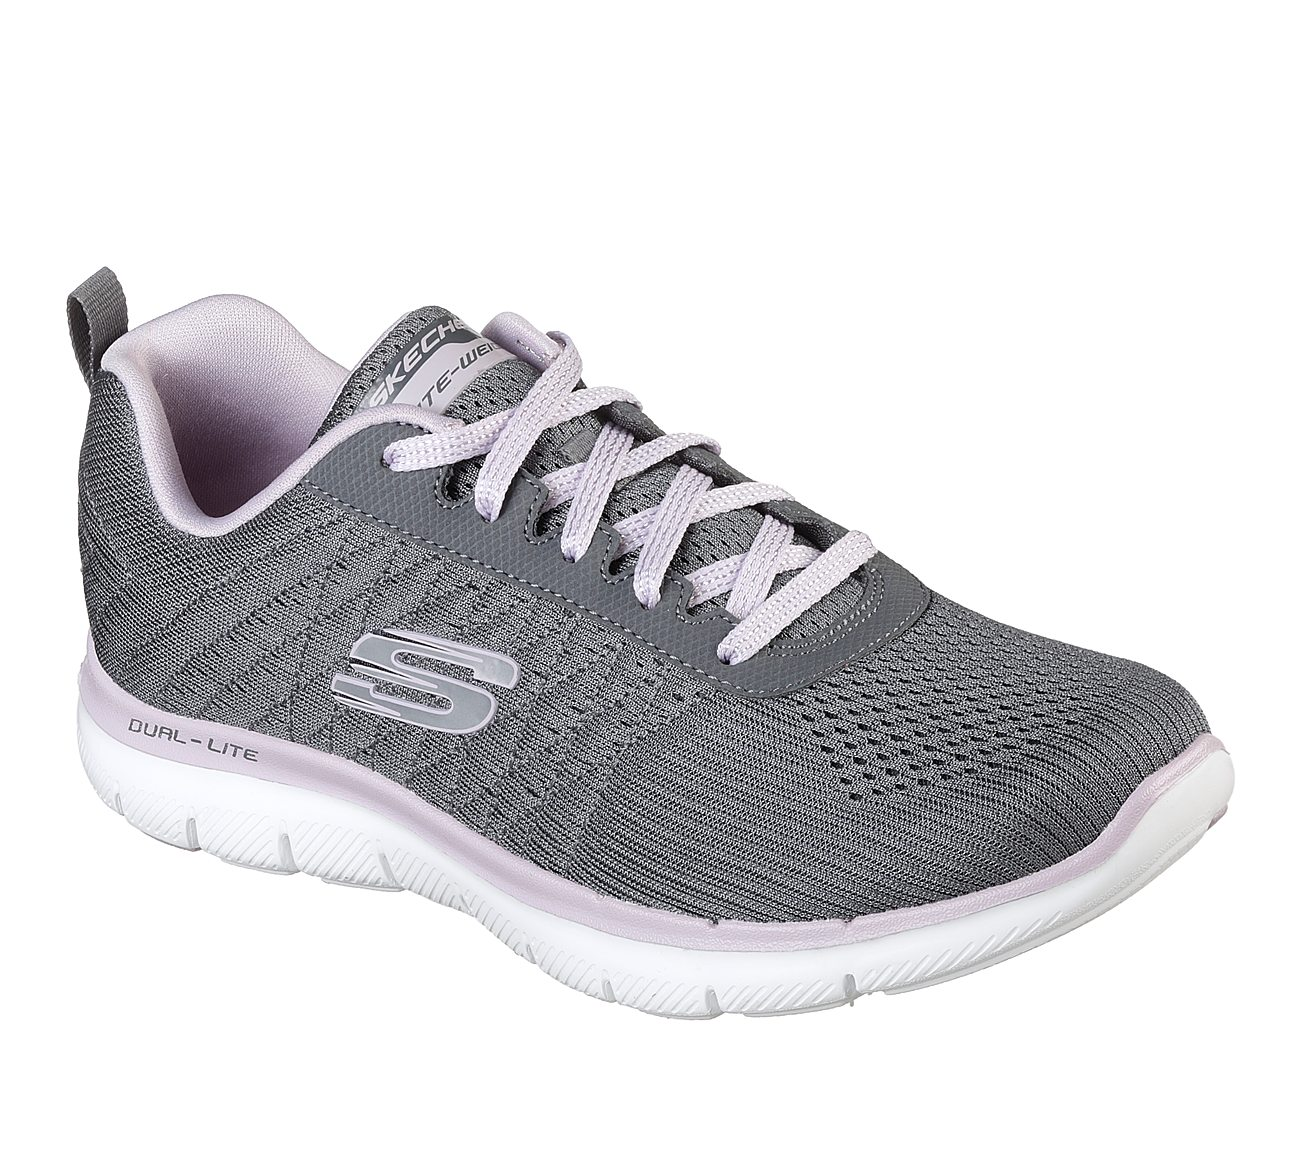 3ba6e4b89297a Buy SKECHERS Flex Appeal 2.0 - Break Free Flex Appeal Shoes only  65.00